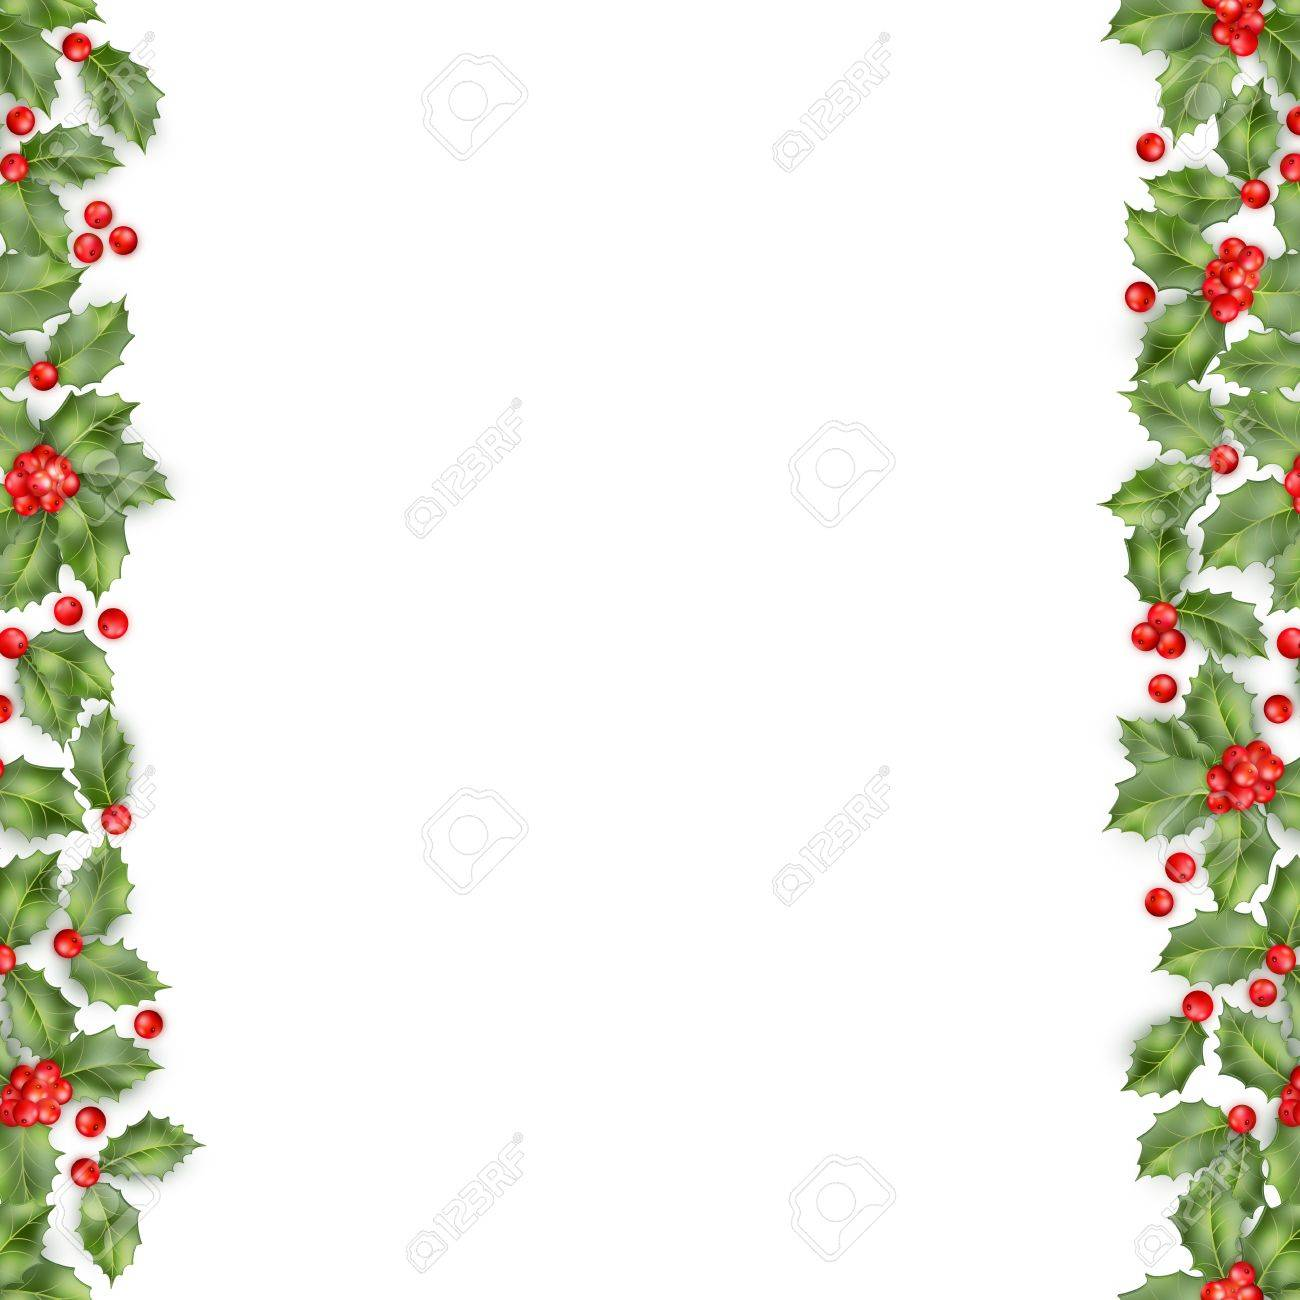 Seamless border from Christmas holly berry. EPS 10 vector.